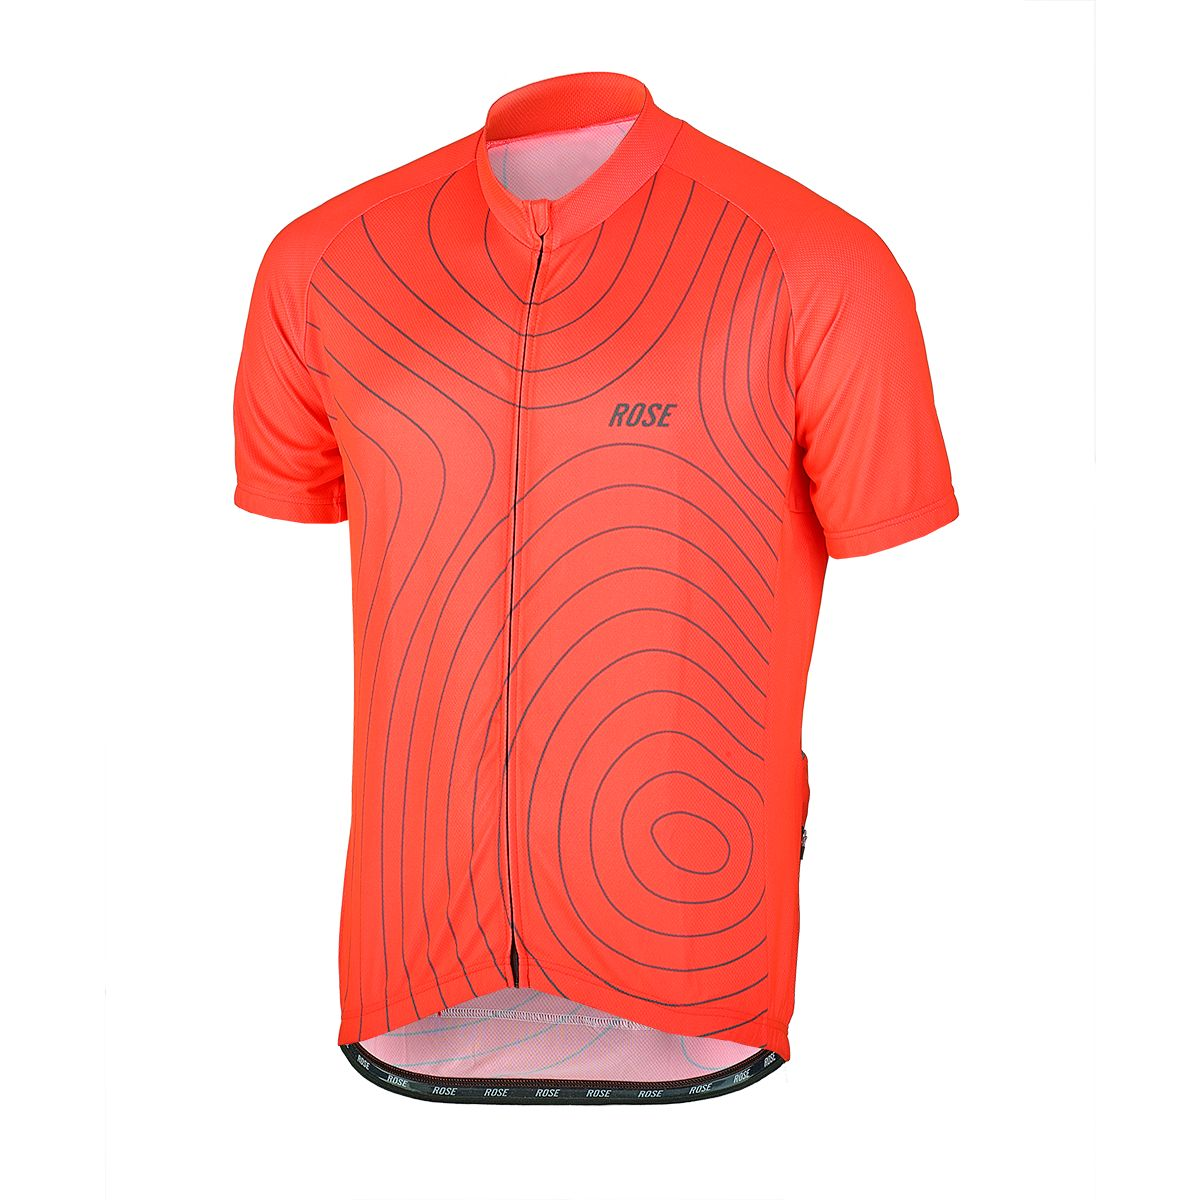 ROSE CONTOUR LINES Cycling Jersey | Trøjer